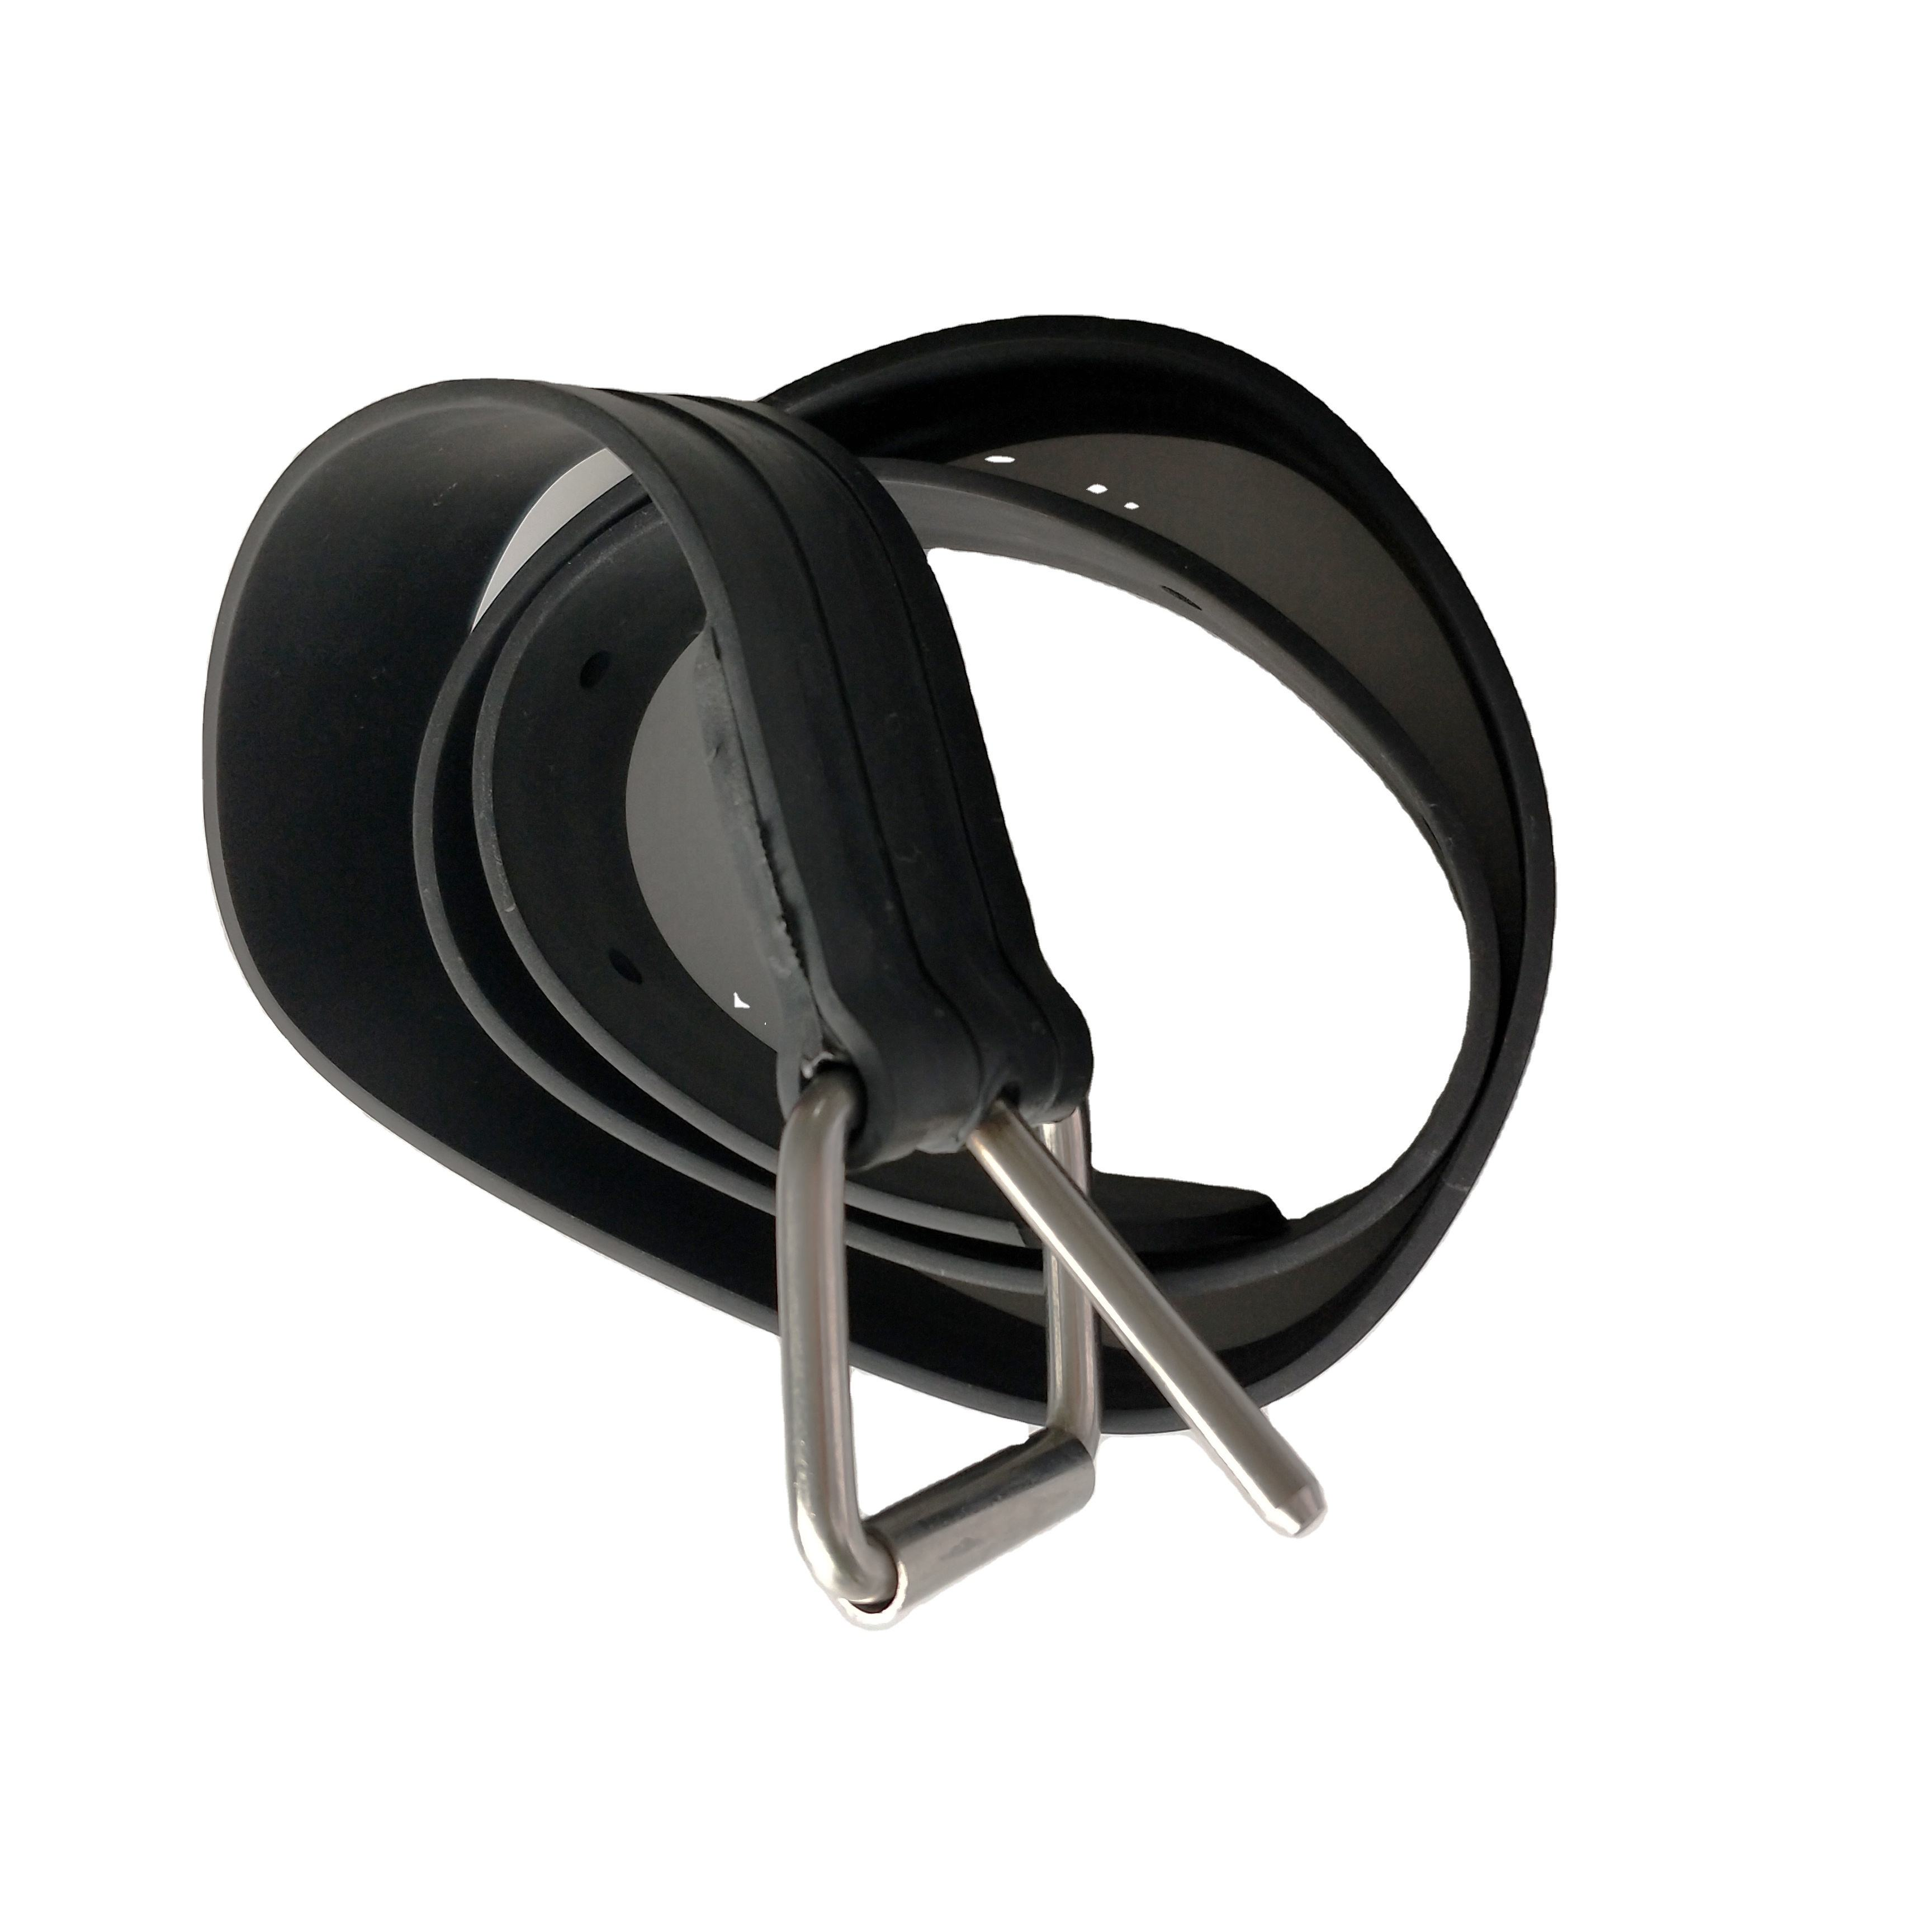 Spearfishing freediving rubber weight belt with SS fastener